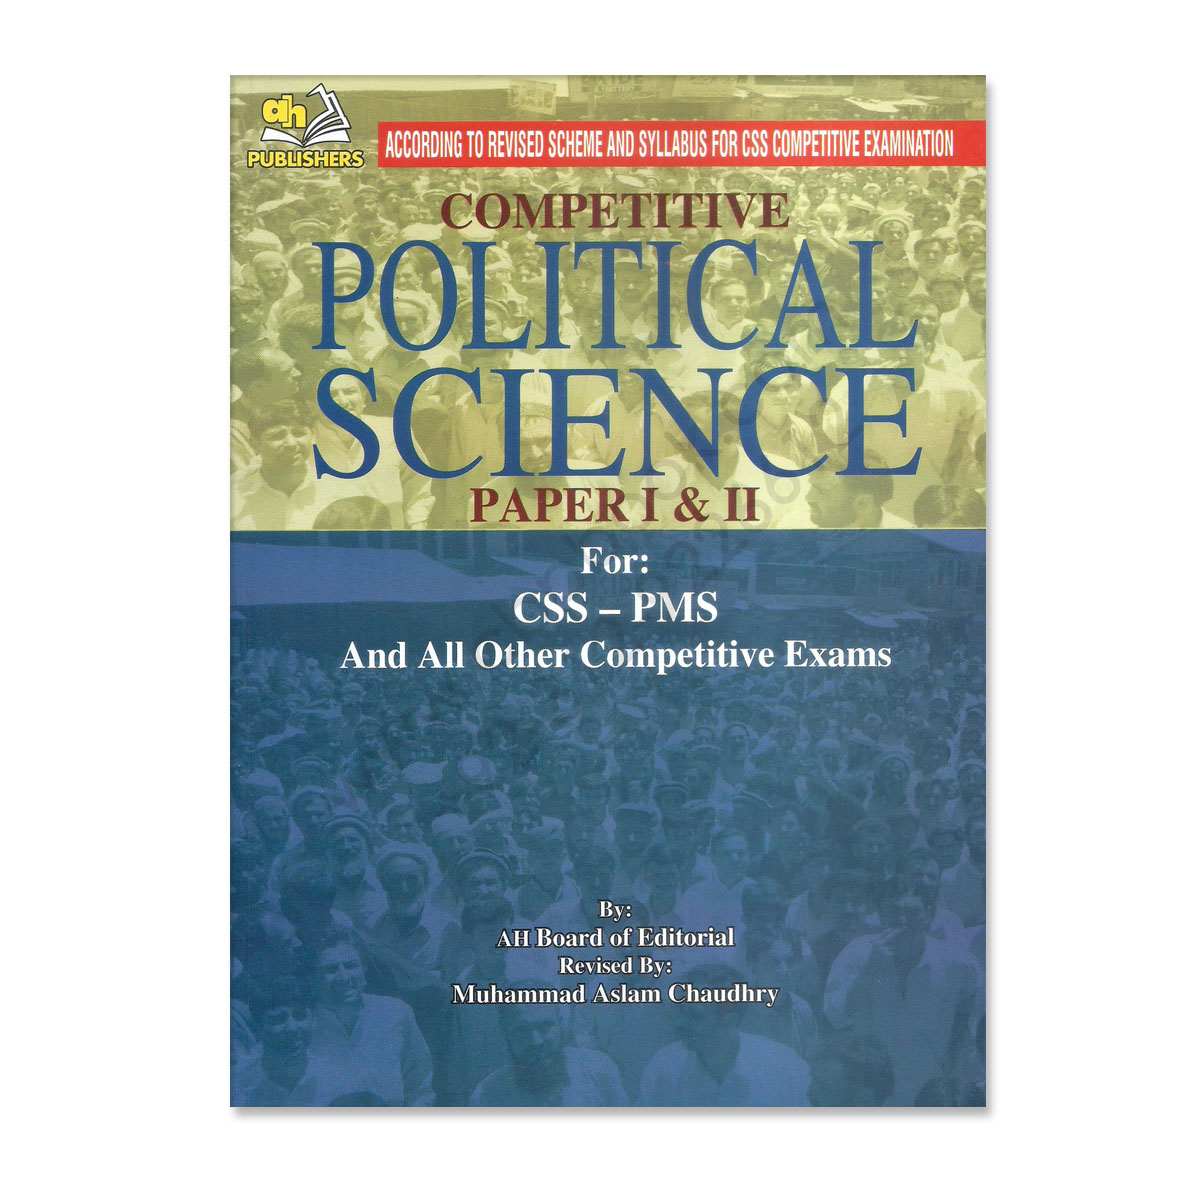 essays political science Essay political science 1 midterm exam not be implemented power: the political power is the ability to shape and control the political behavior of other and to lead and guide their behavior in the direction desired by the person, group, or institution wielding the political power.